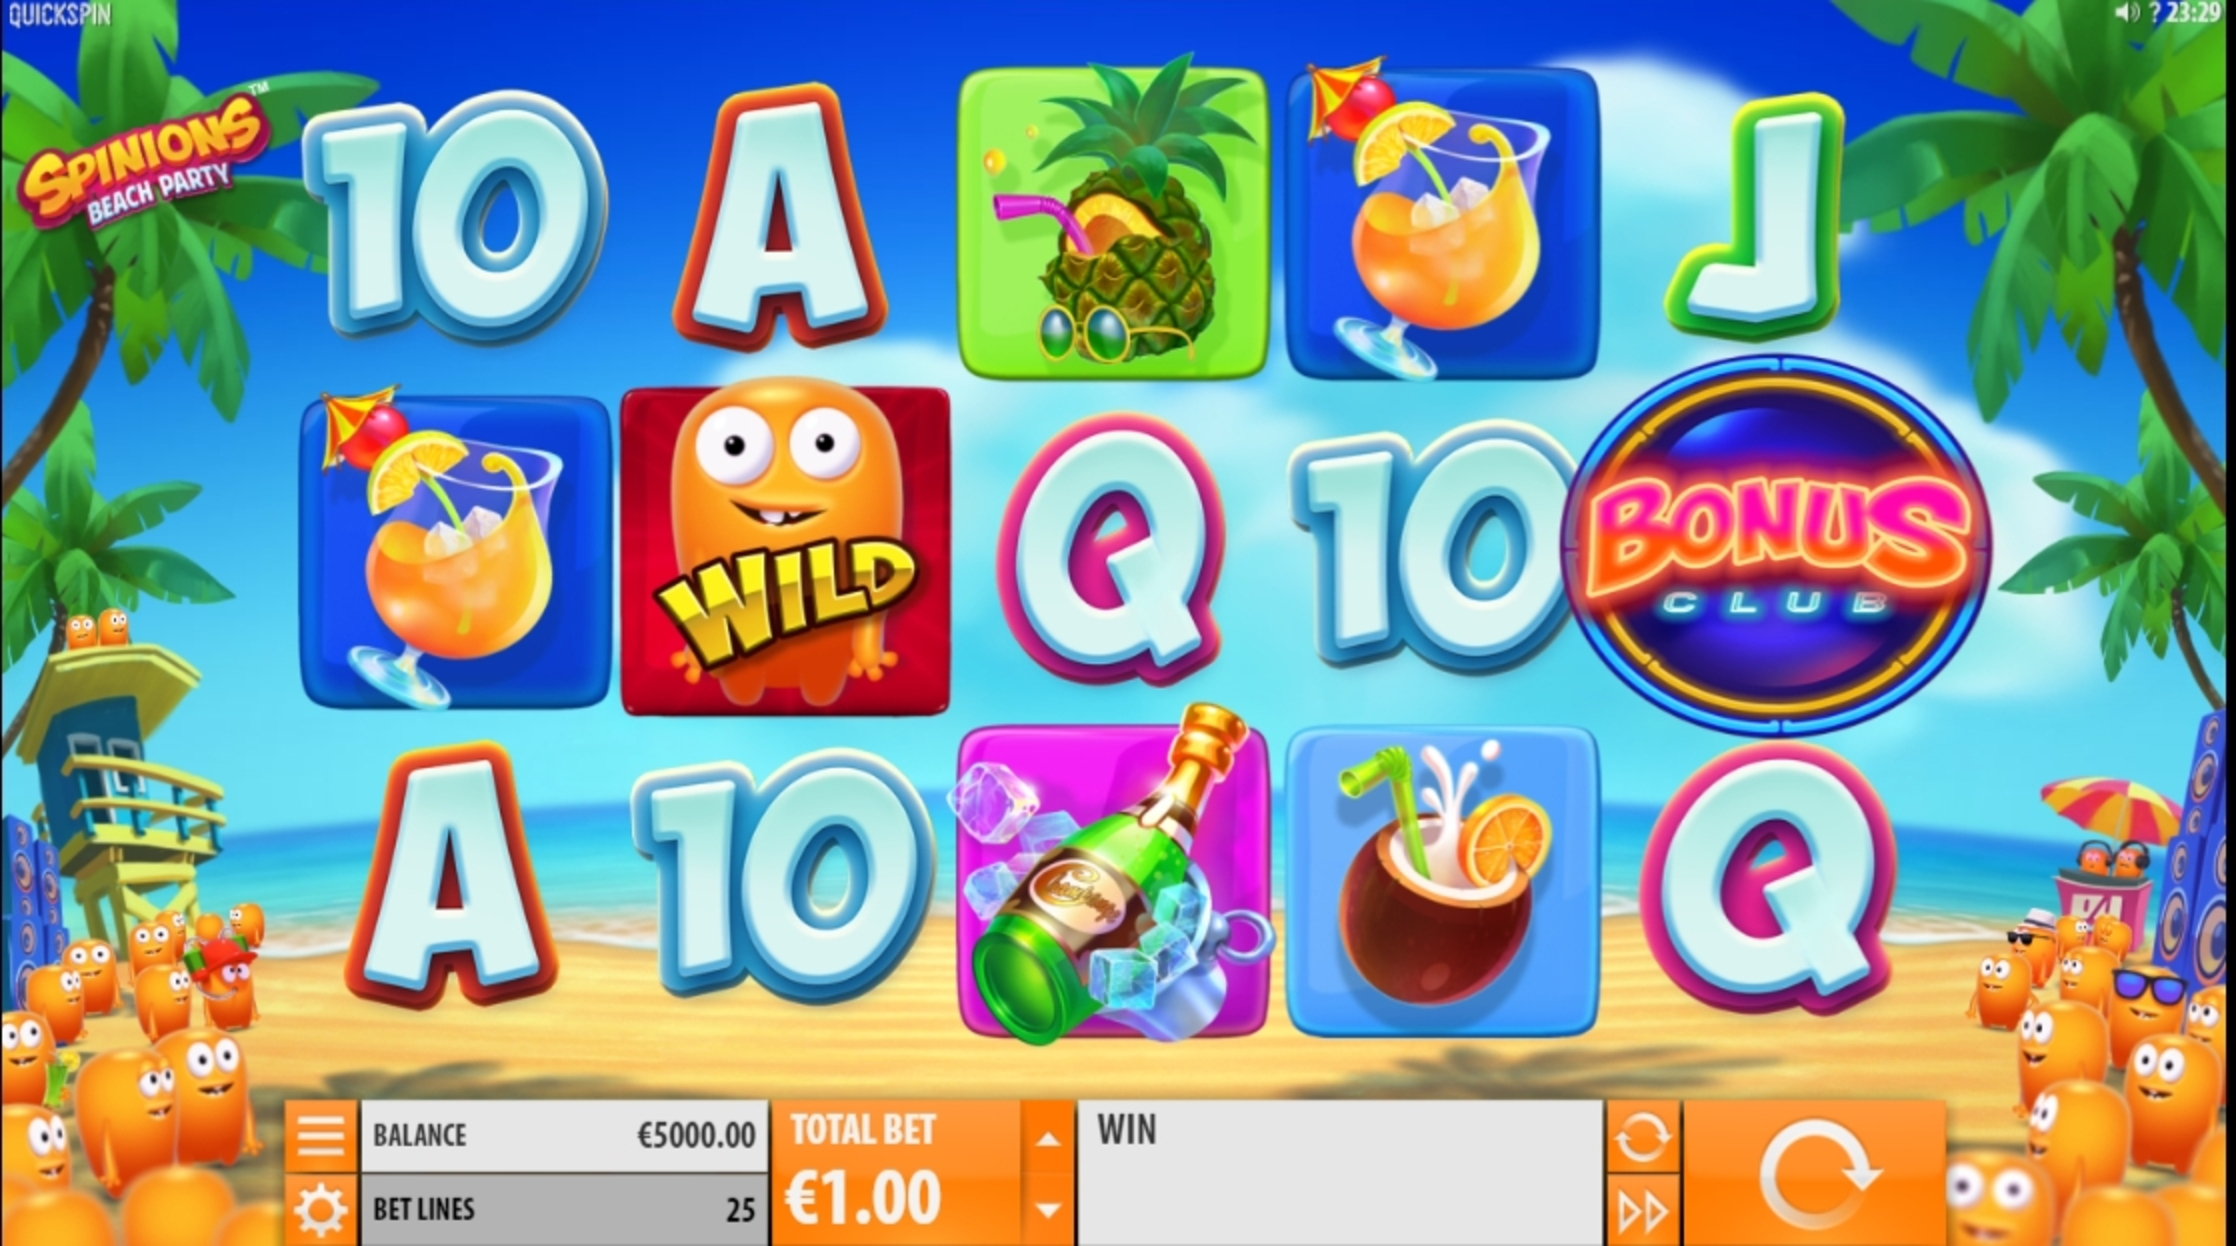 Reels in Spinions Slot Game by Quickspin